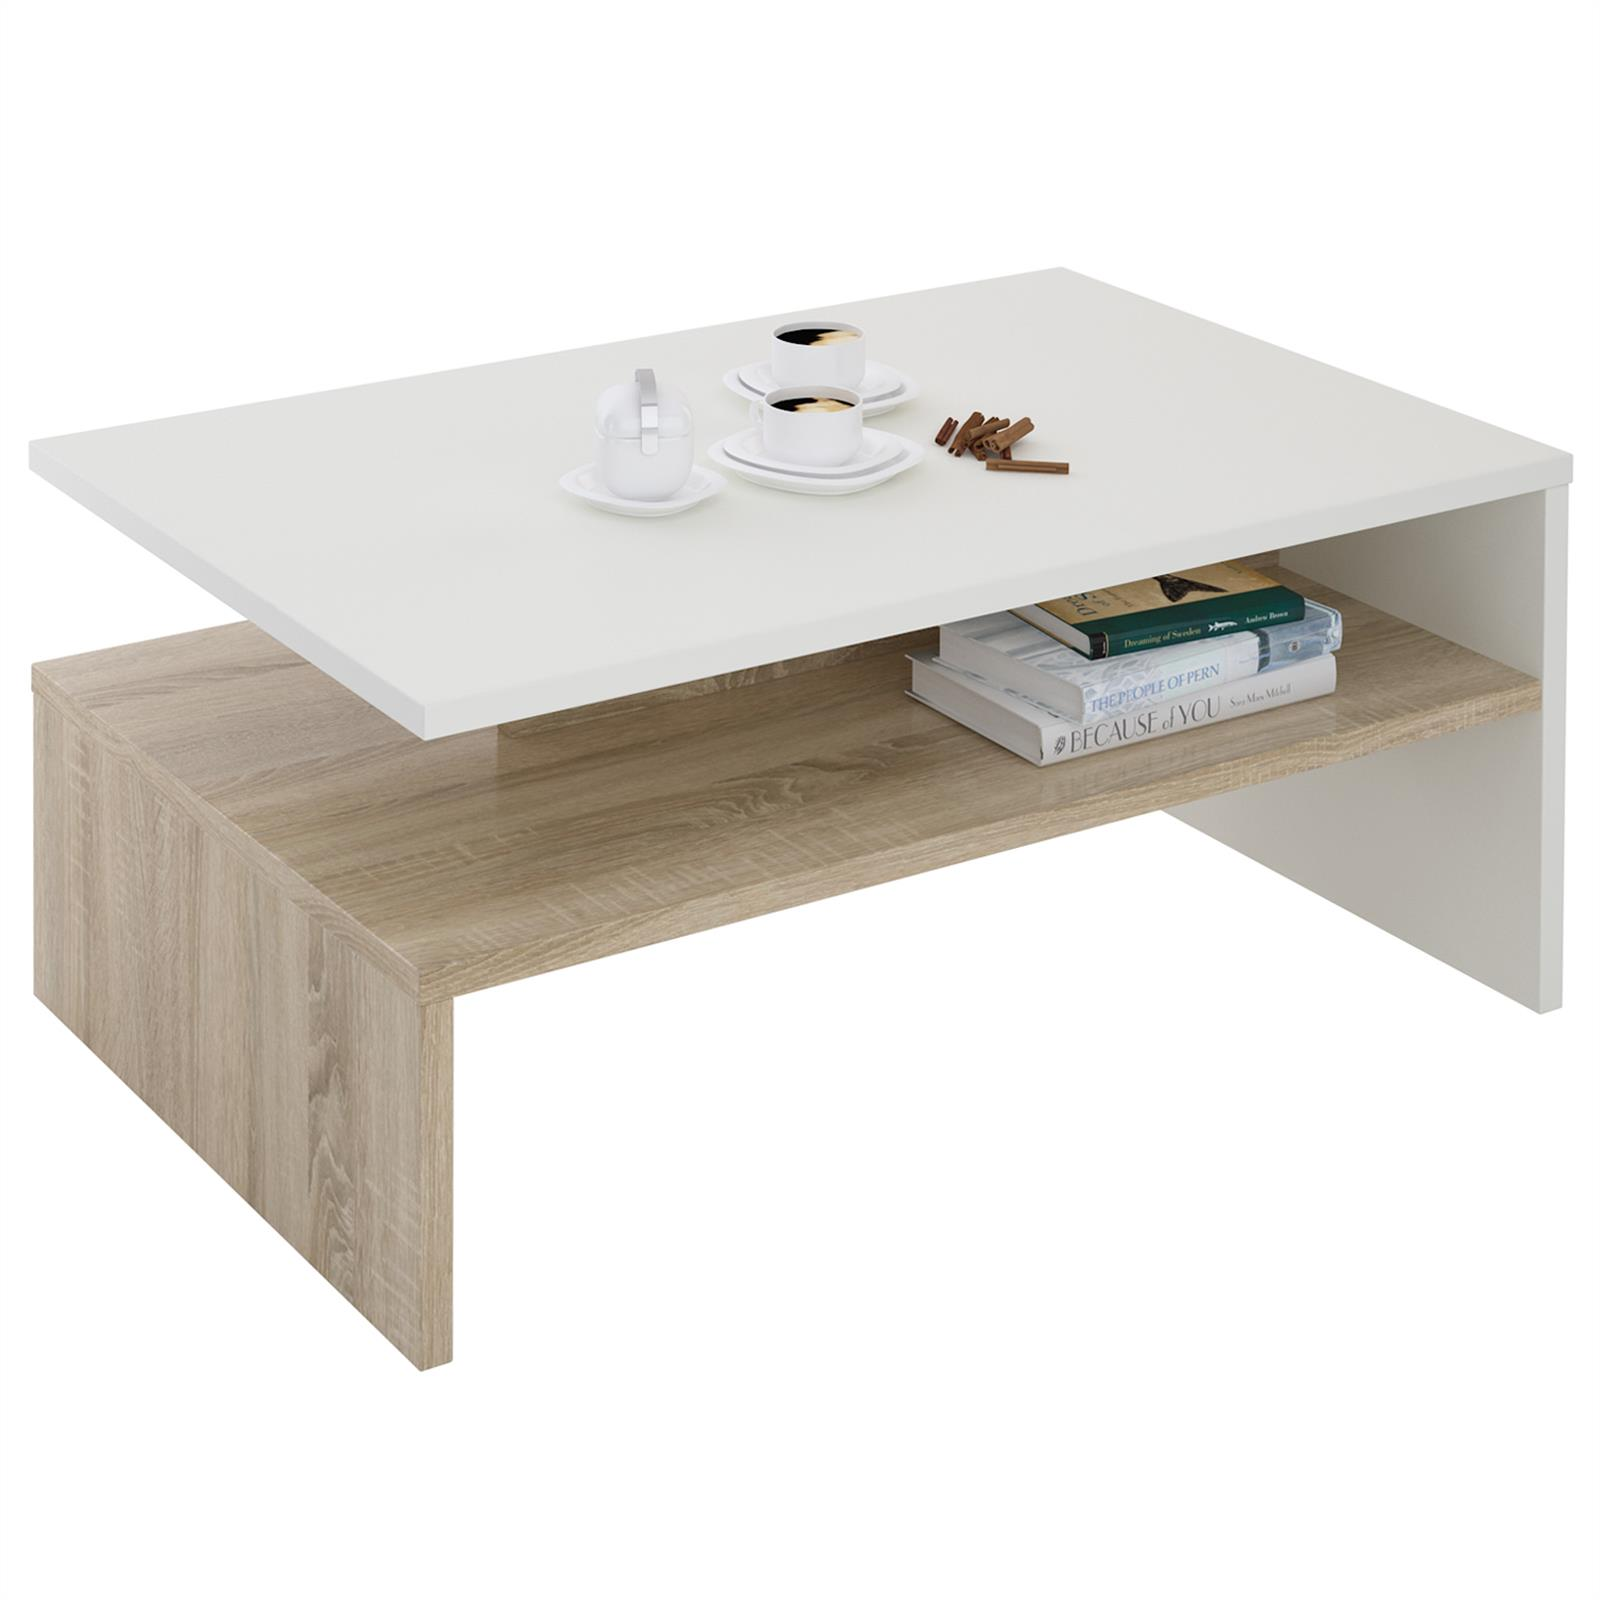 Table De Salon En Mdf - Table Basse De Salon Mdf 4 Coloris Disponibles Ebay[mjhdah]http://www.homelife24.fr/media/catalog/product/cache/2/image/9df78eab33525d08d6e5fb8d27136e95/1/0/1000084_04.jpg